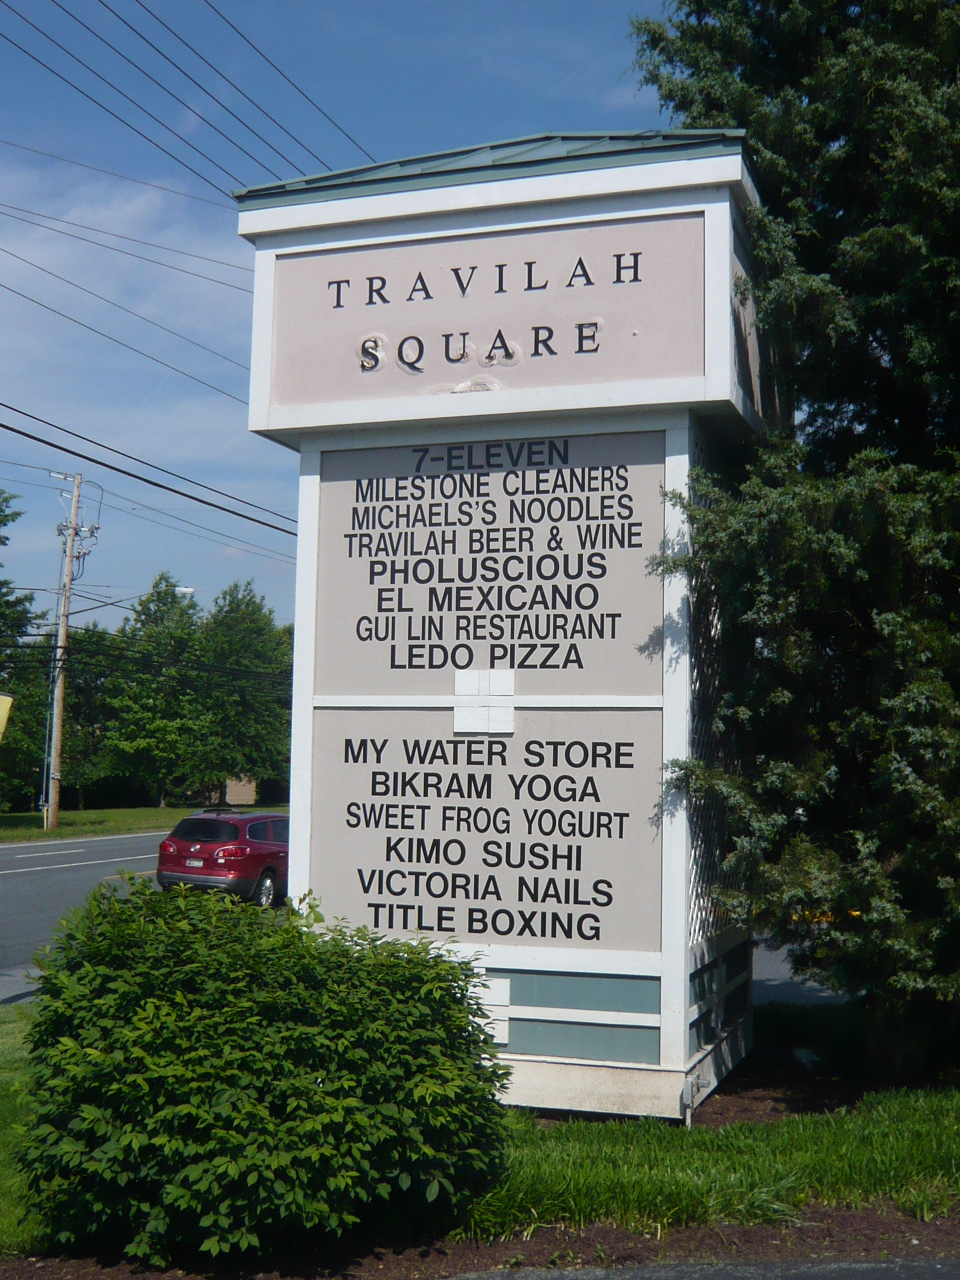 Travilah Square